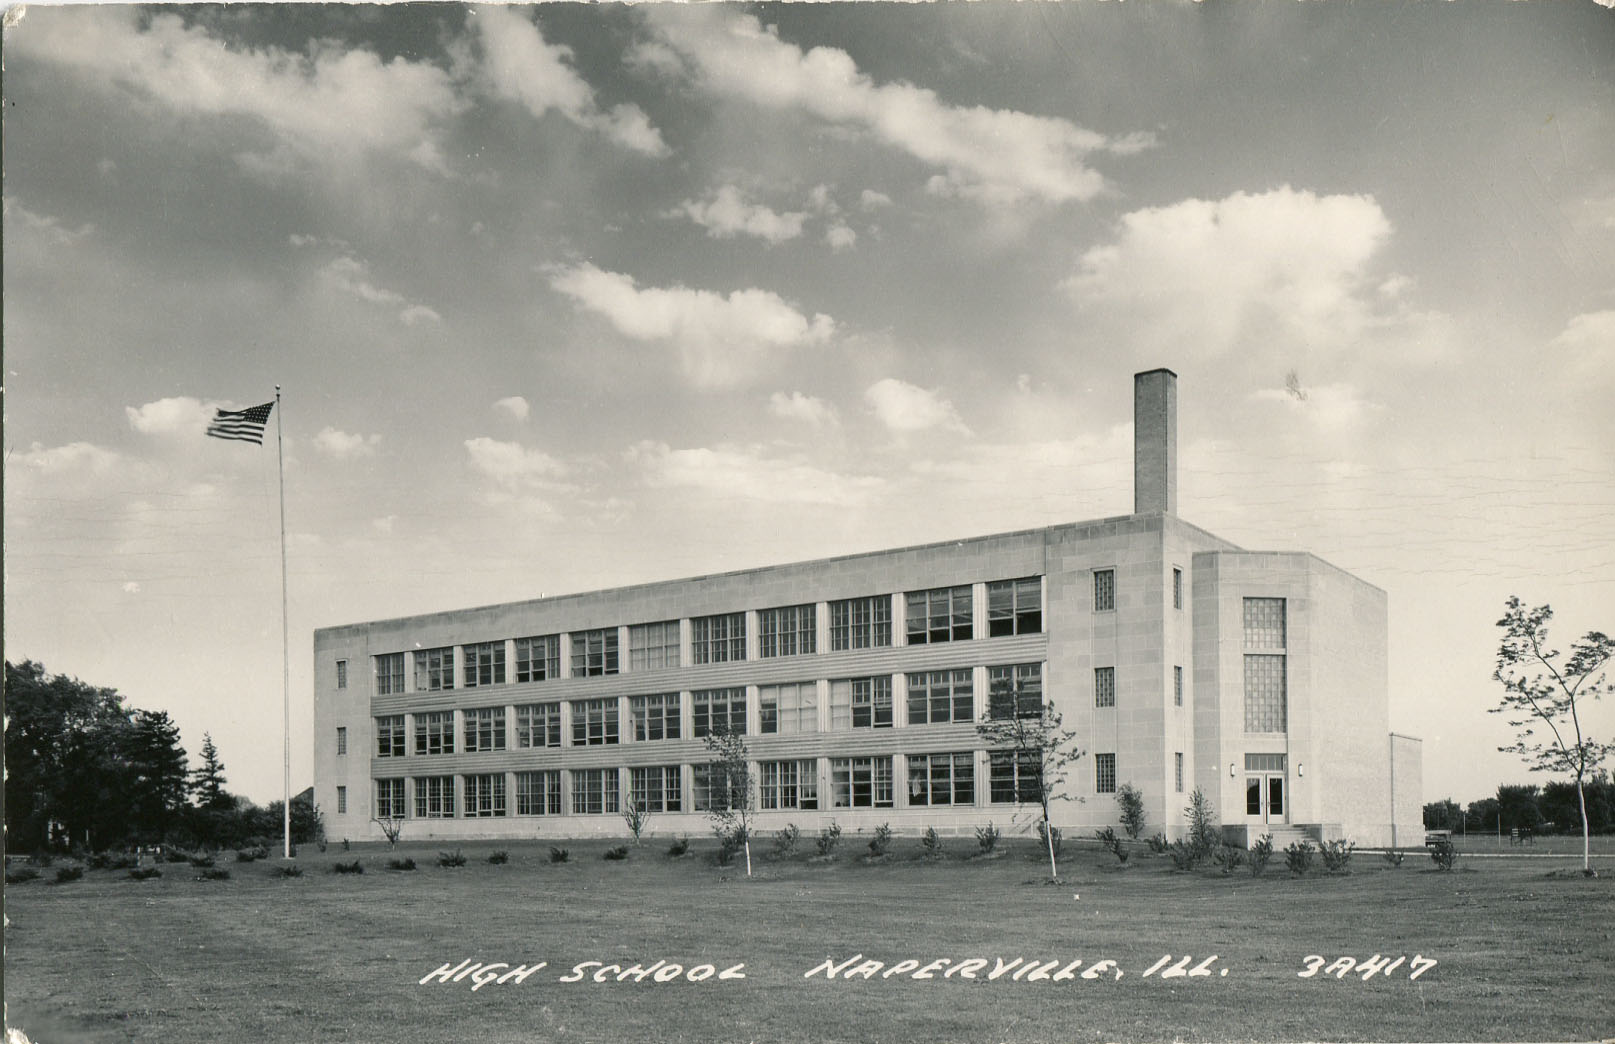 Naperville High School postcard